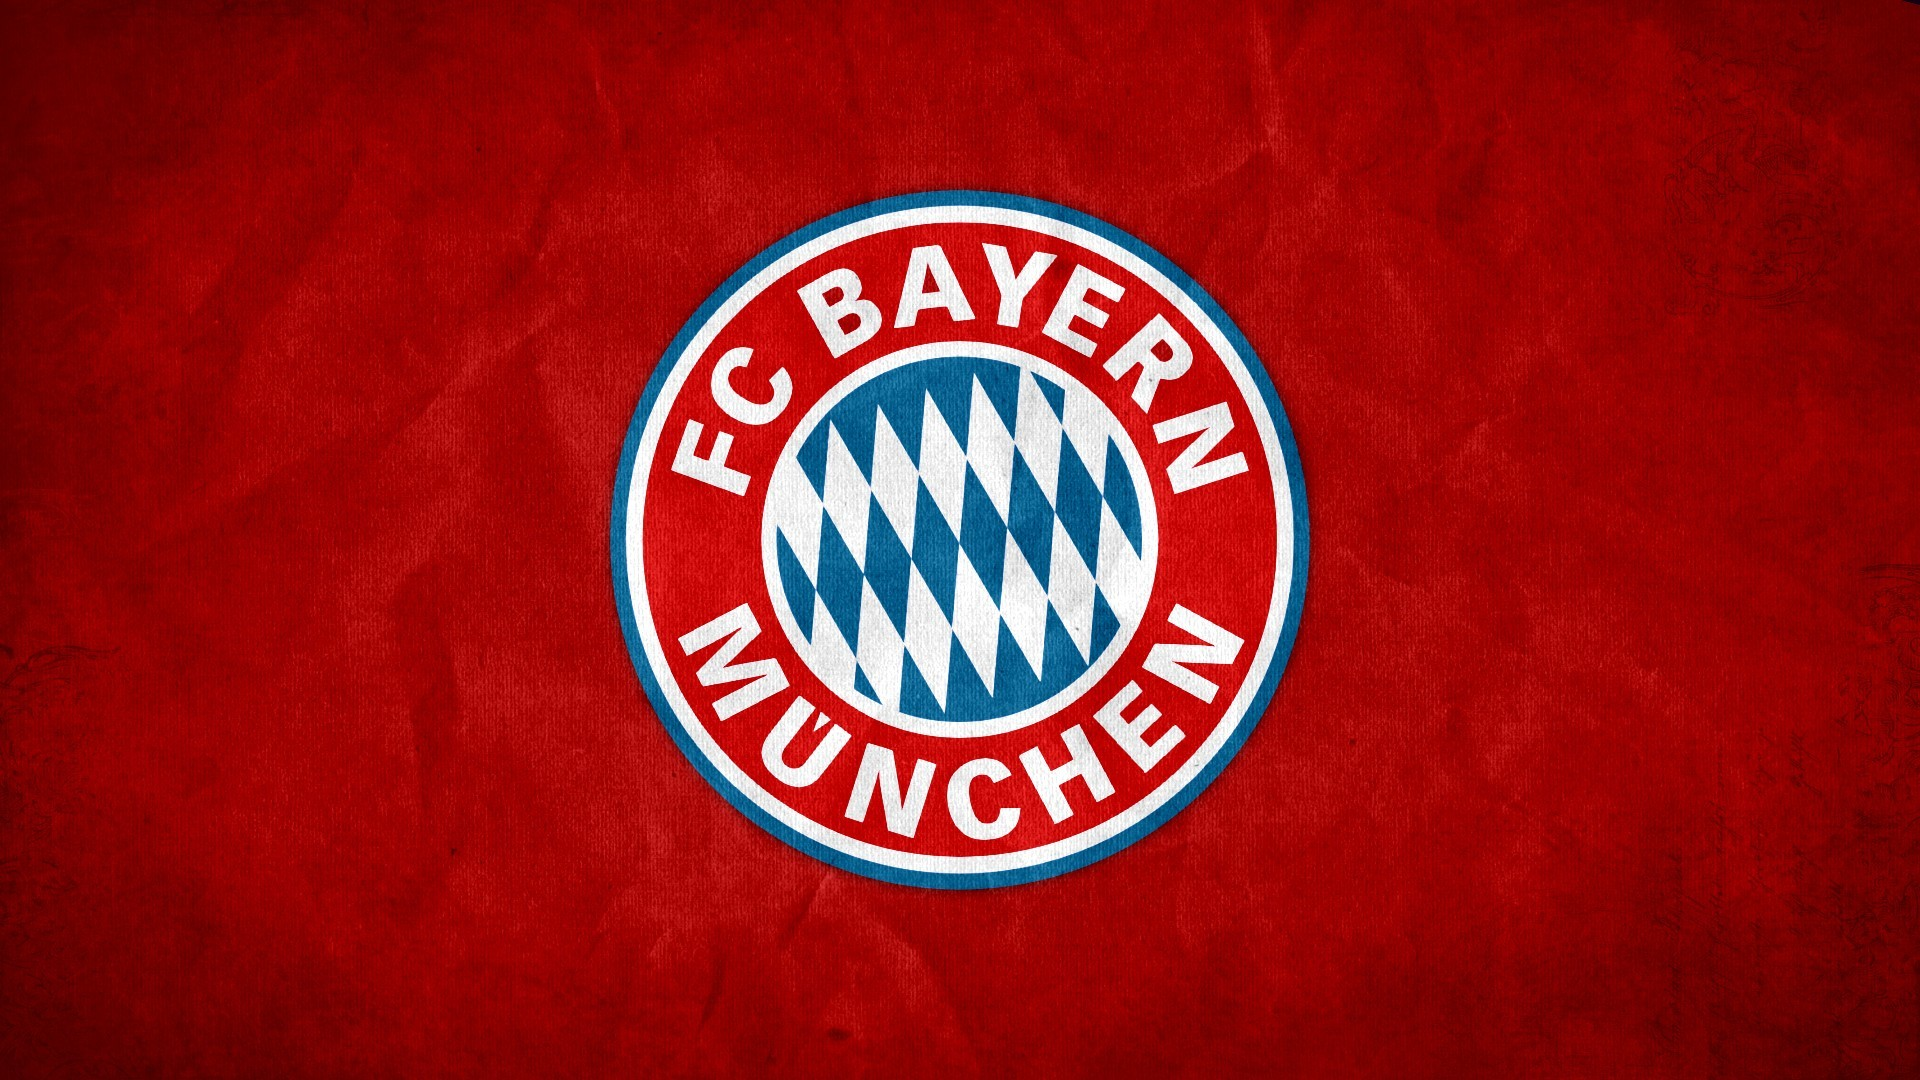 1920x1080 Bayern Munich Logo Wallpaper